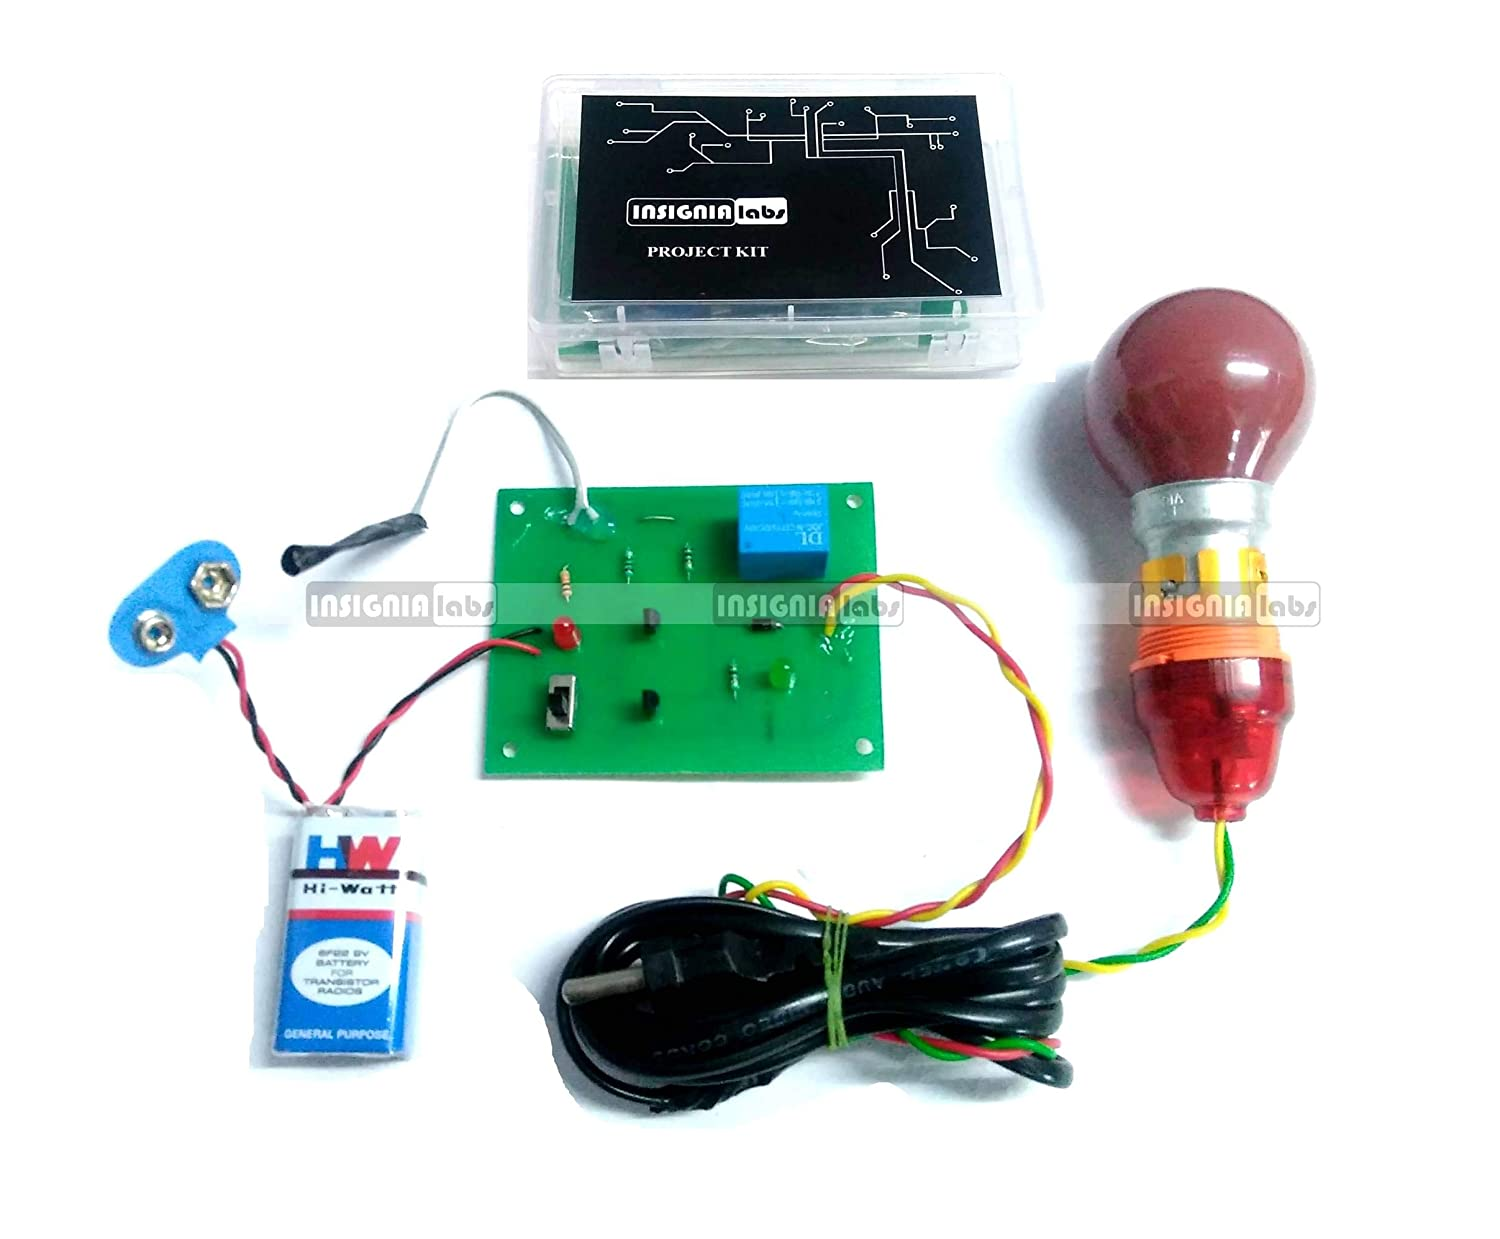 Ldr Sensor Based Ac Light Bulb Control Project Kit Electronic Projects Circuit School College Industrial Scientific